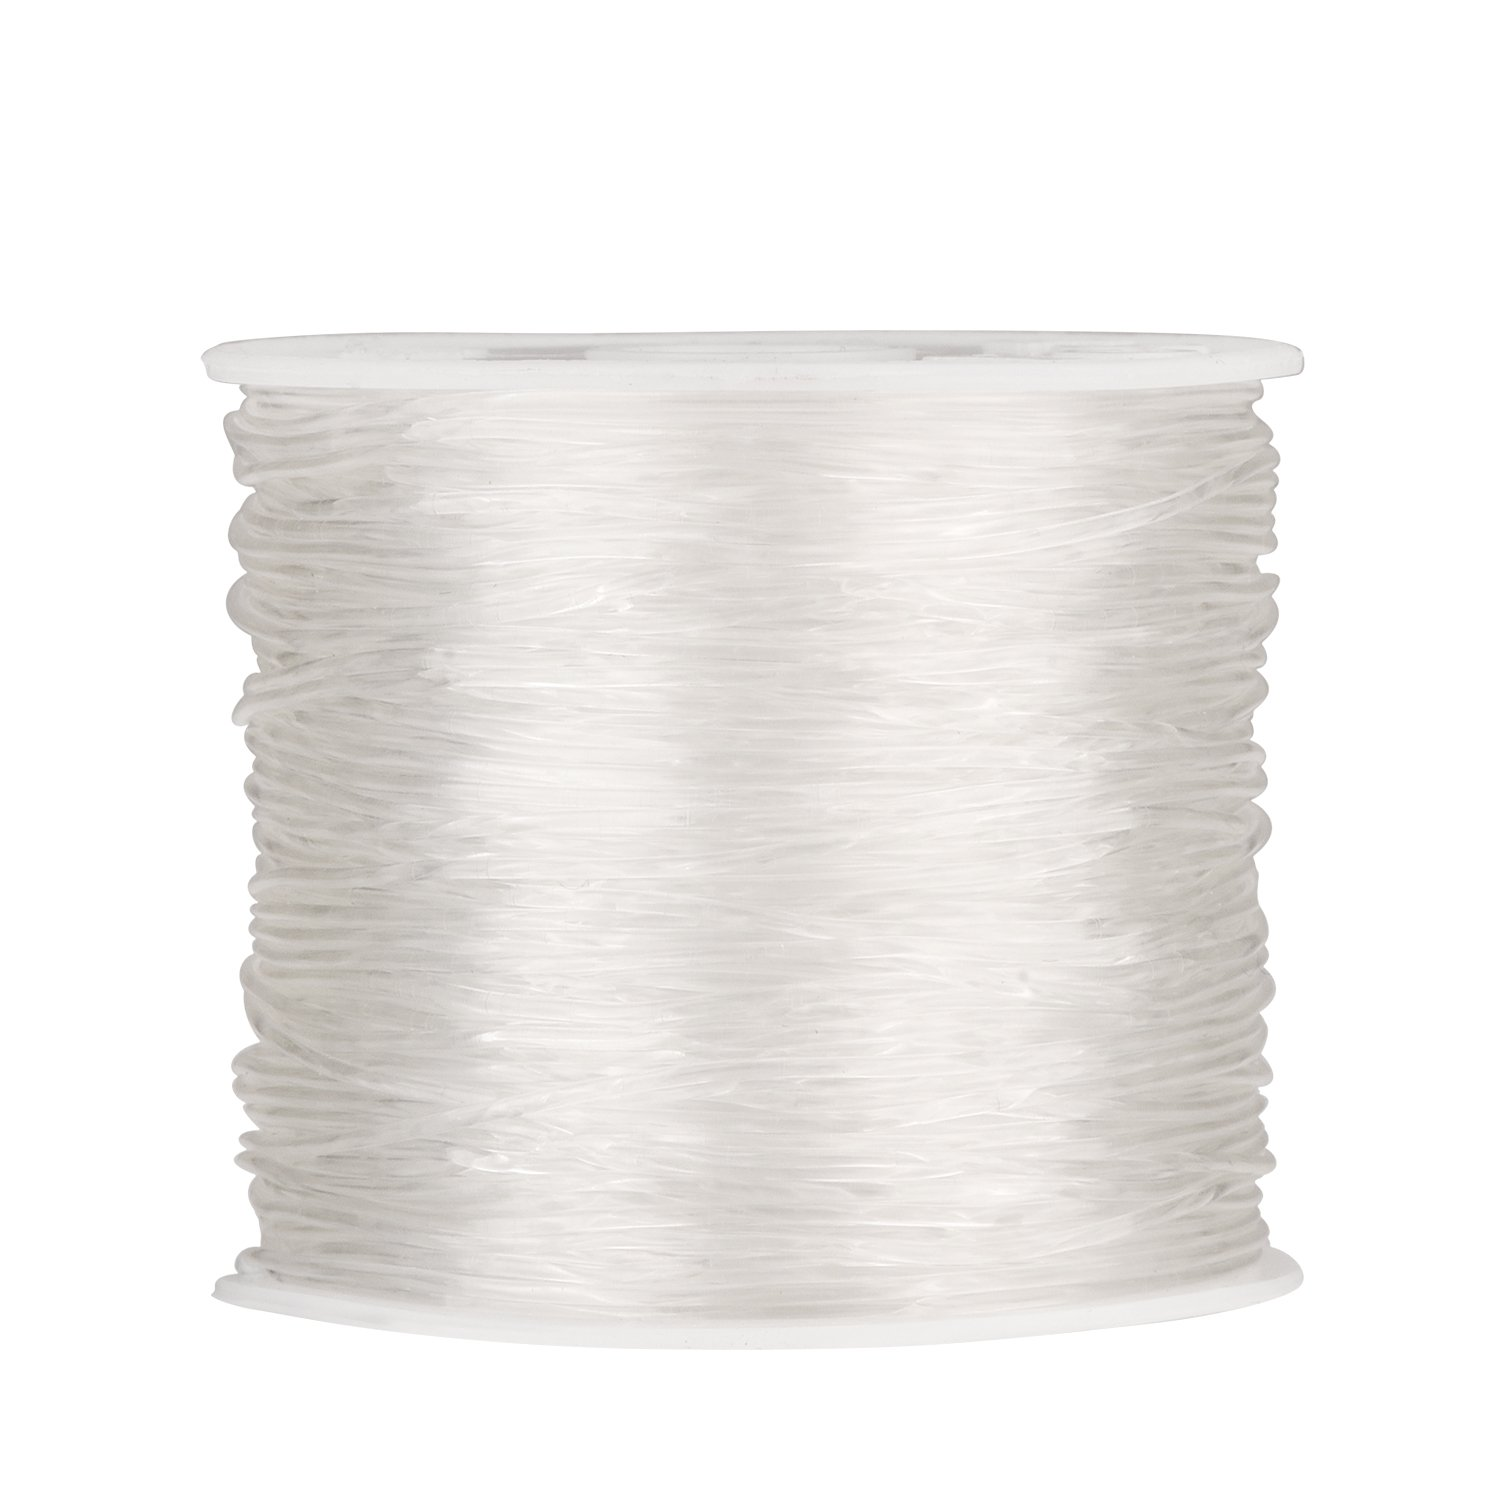 1 mm Elastic Stretch Beading Thread Craft Jewelry Bracelet Making Cord String, 90 m, Clear Outus